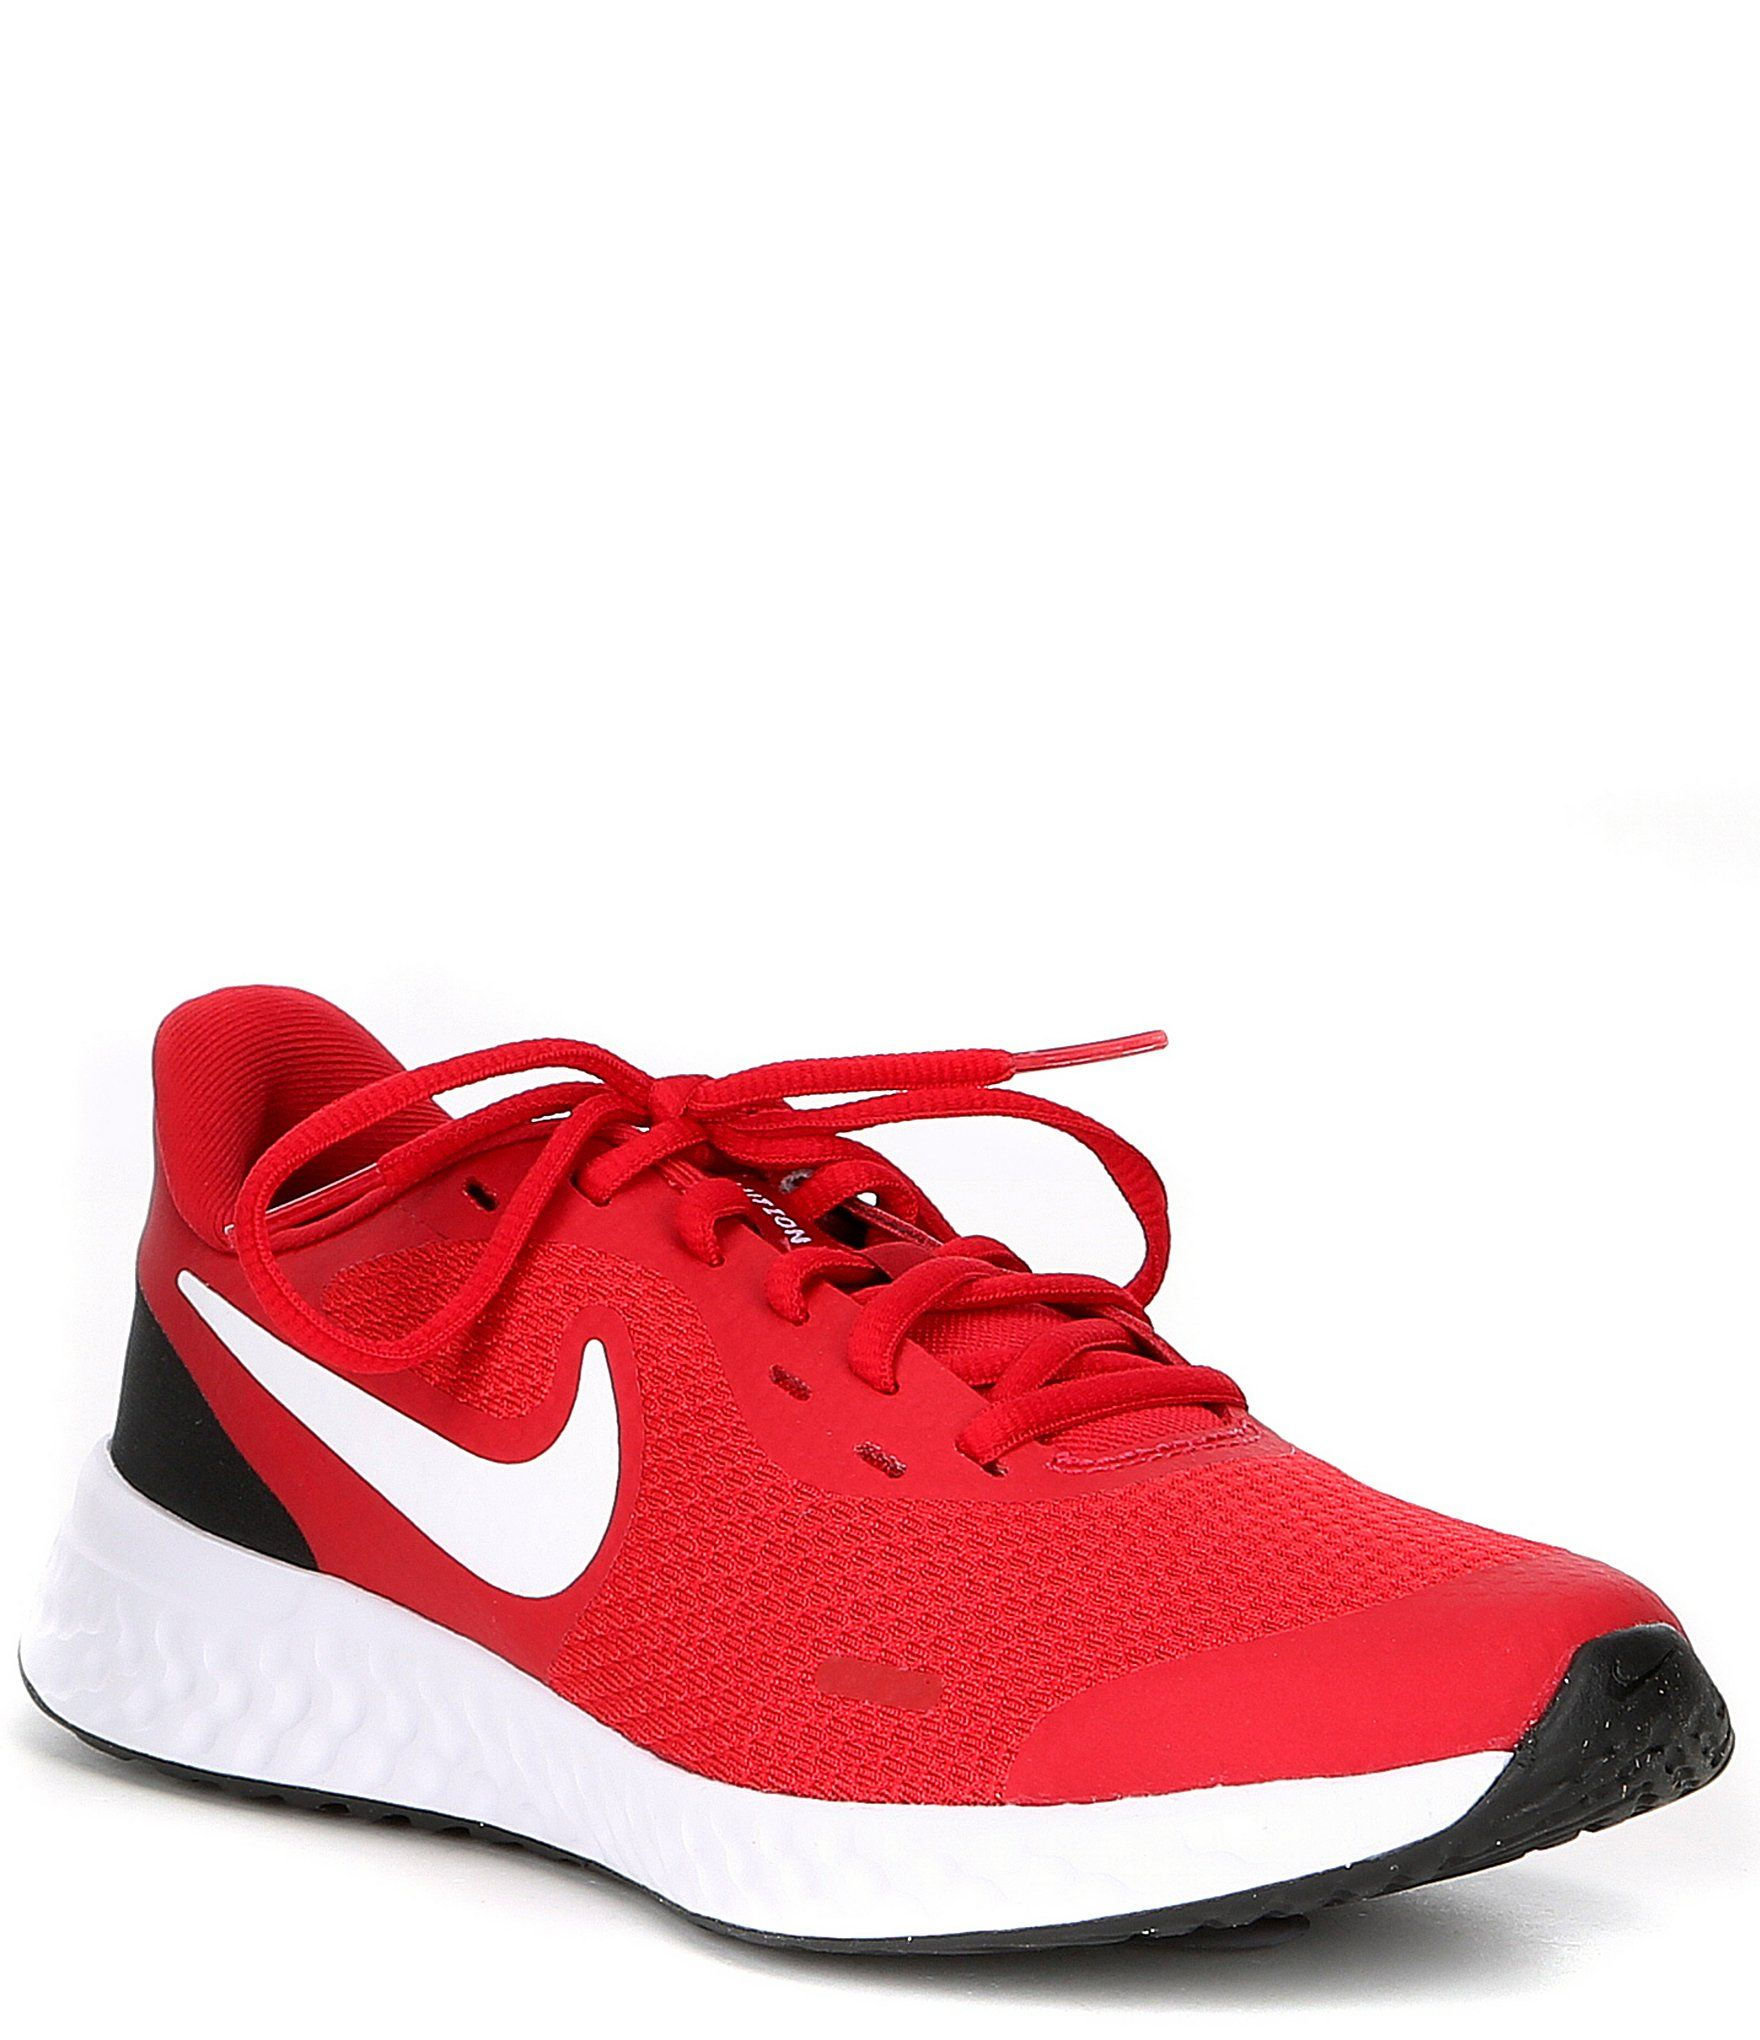 nike big swoosh gym red white black 5